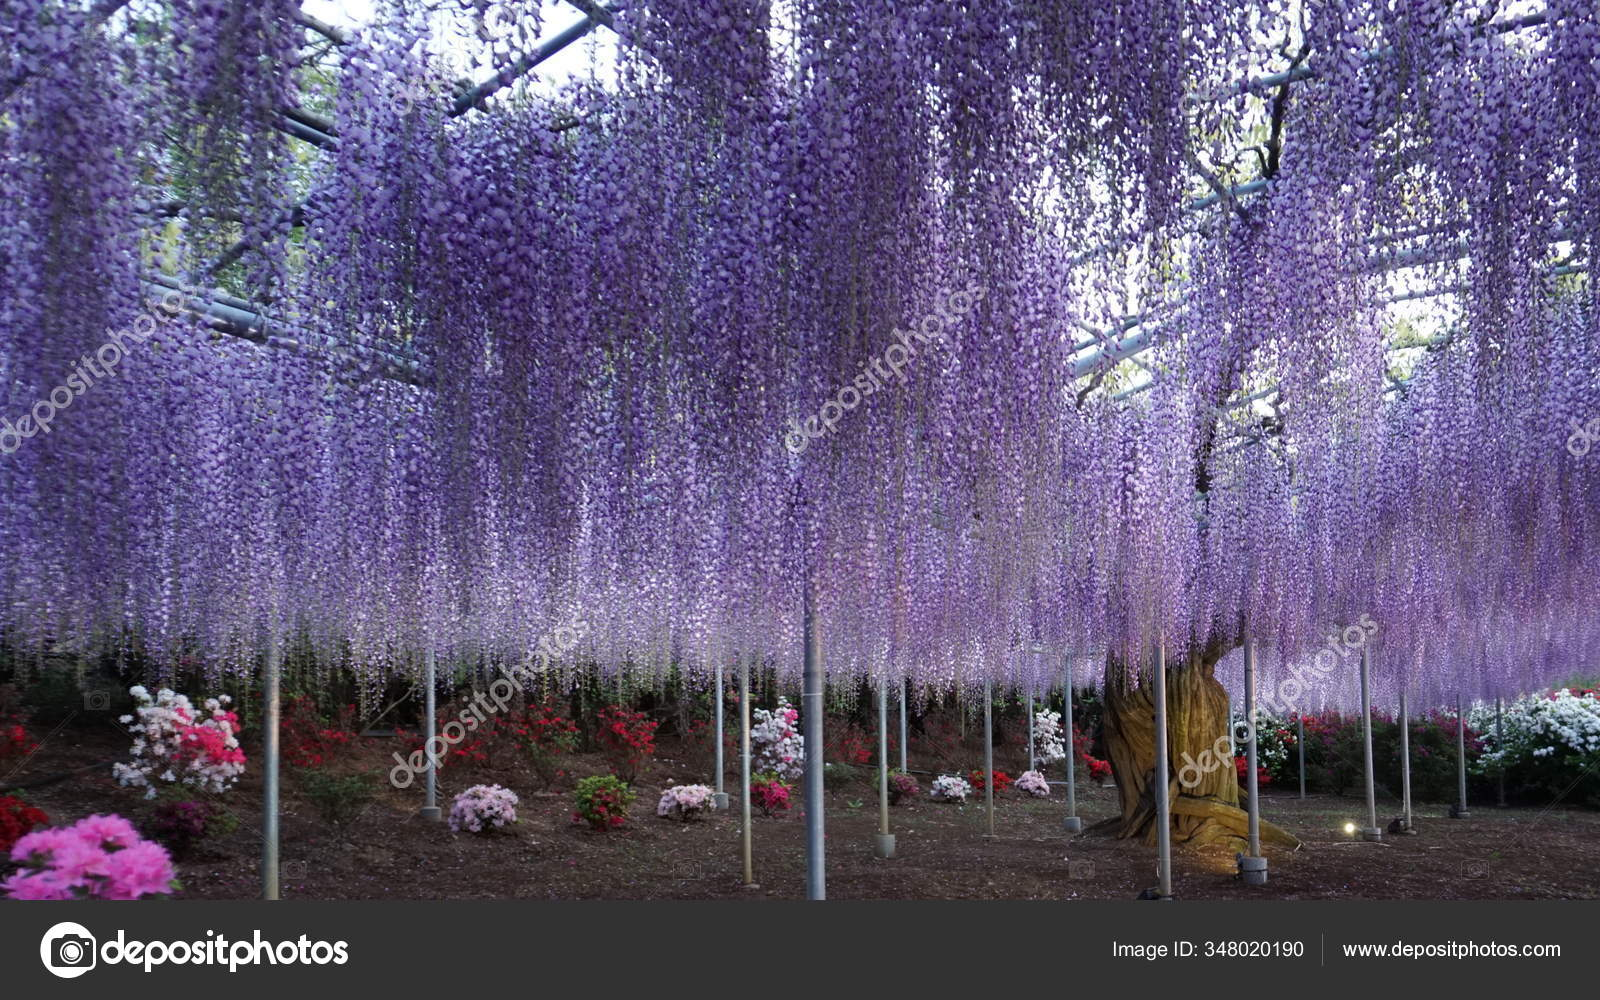 Hanging Bunches Purple Wisteria Tree Spring Time Japan Stock Photo C Tanya Tawa Hotmail Com 348020190